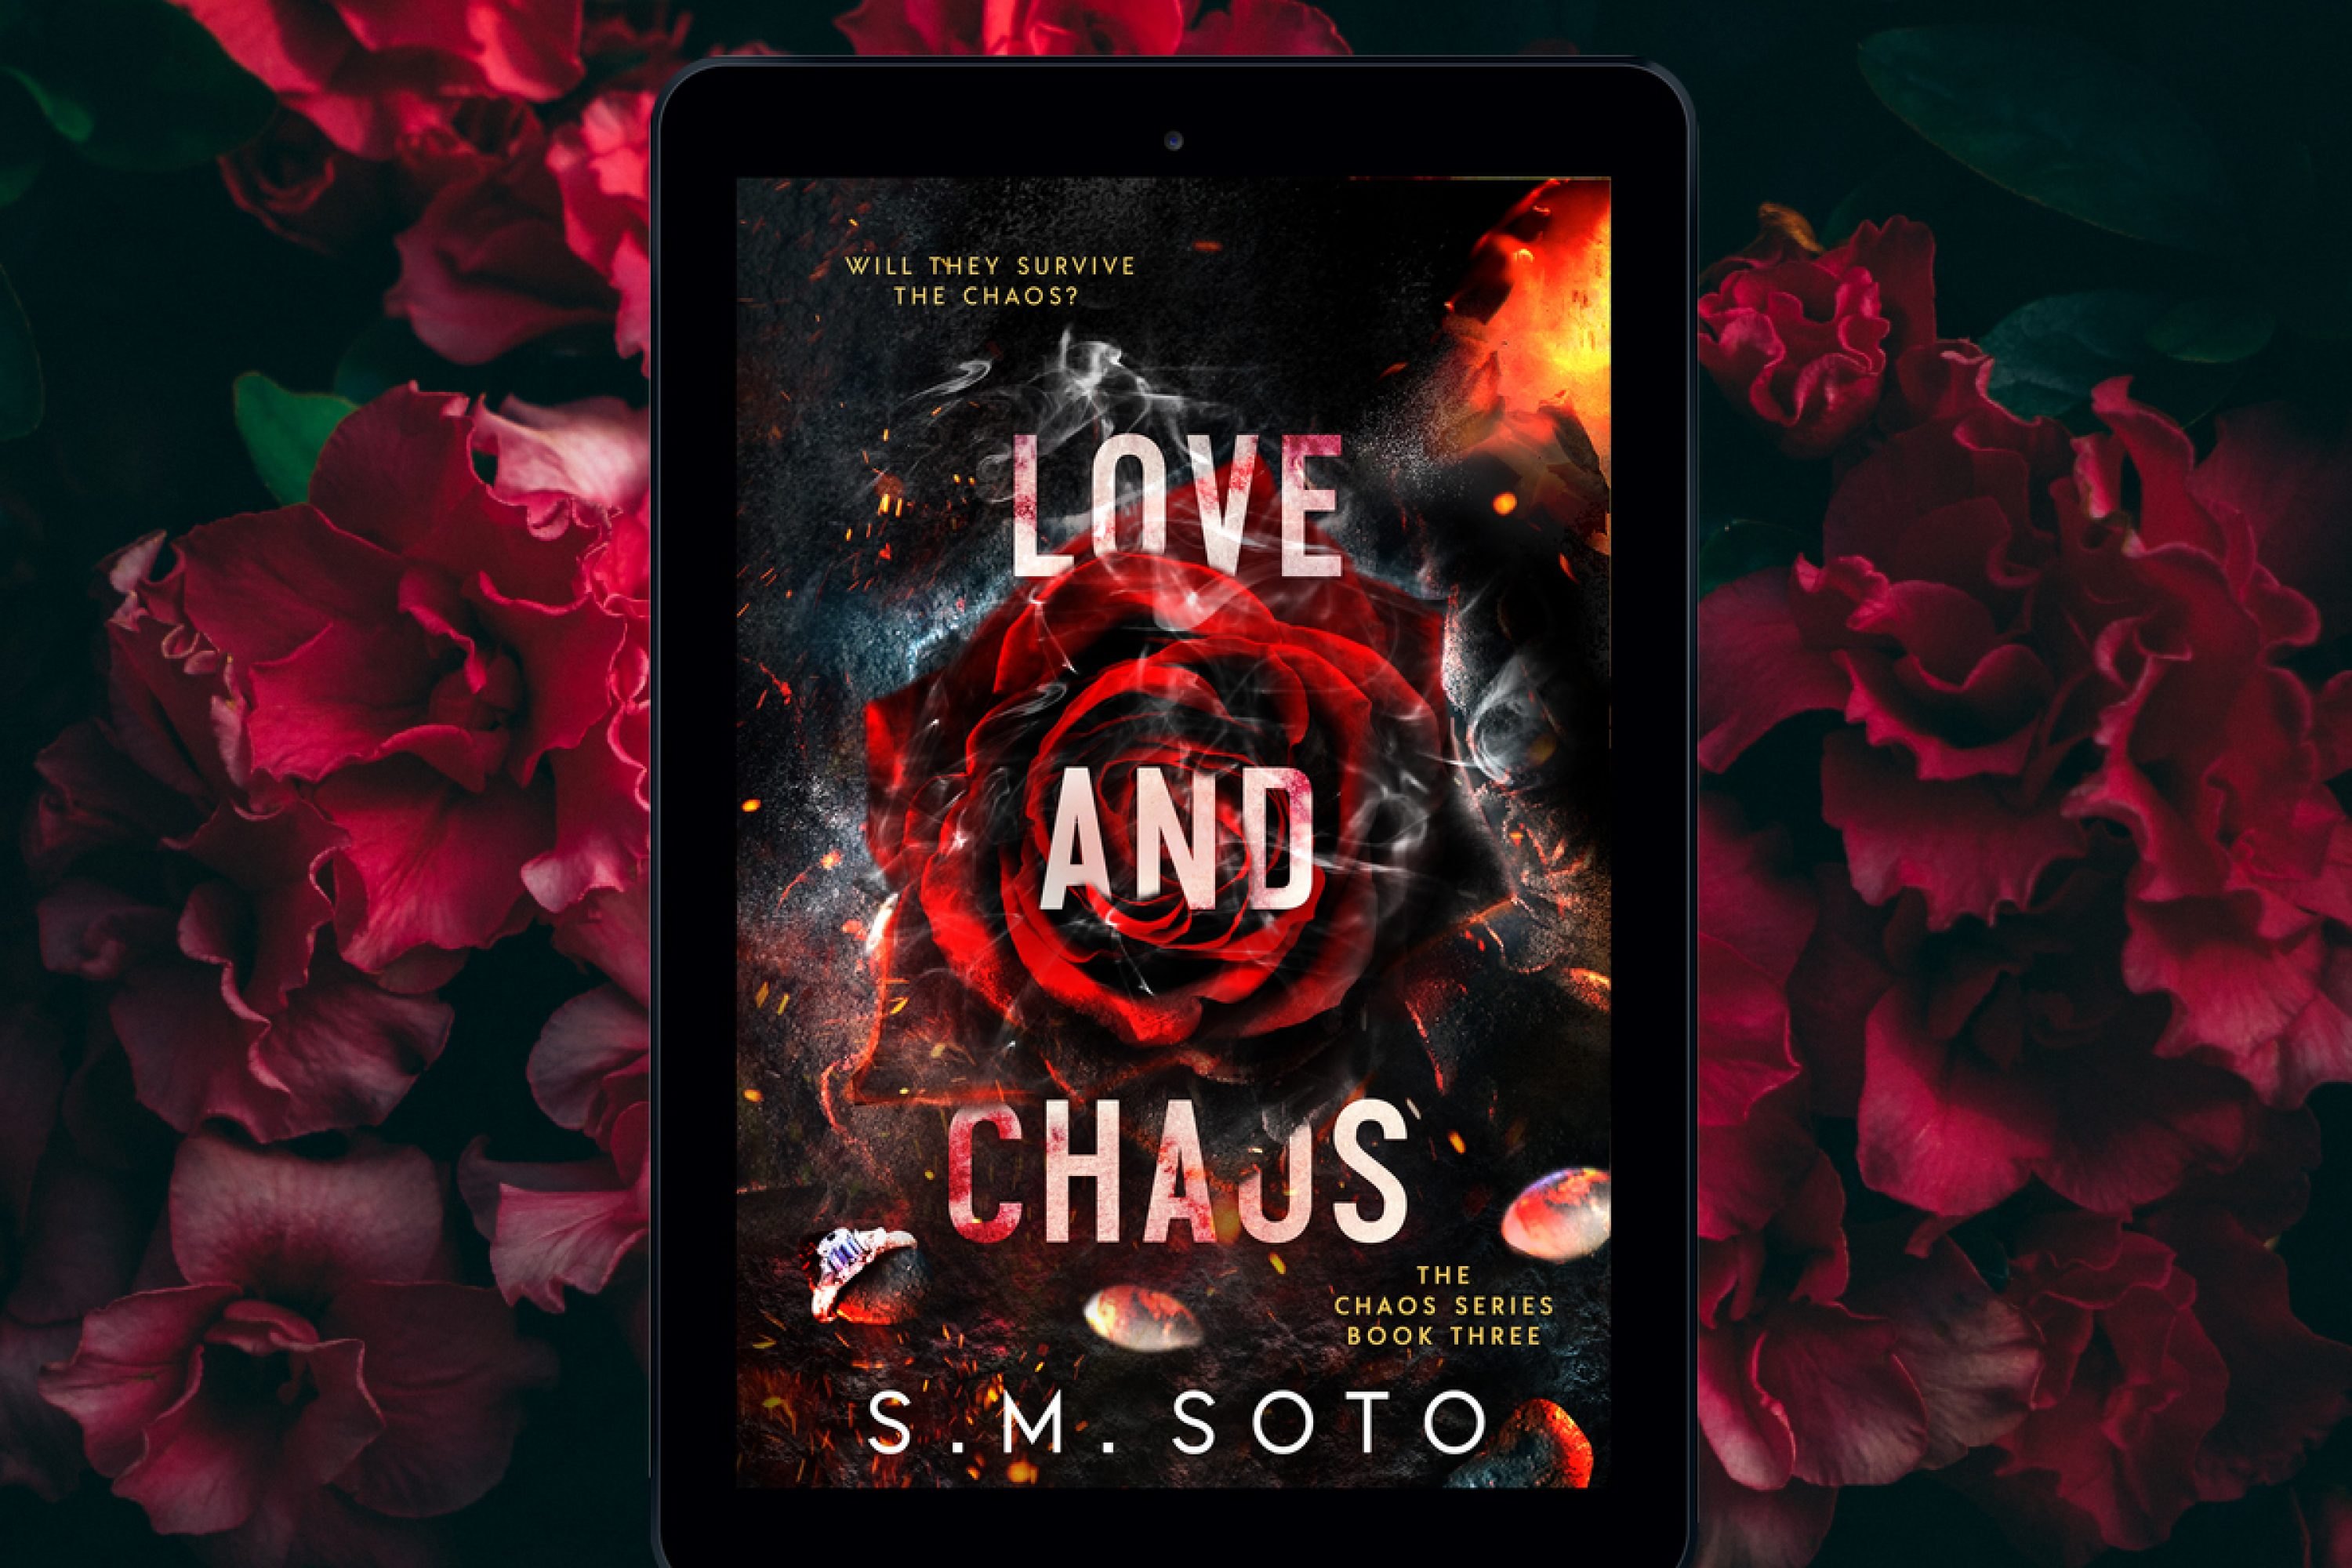 Coming Soon: Love and Chaos by S.M. Soto